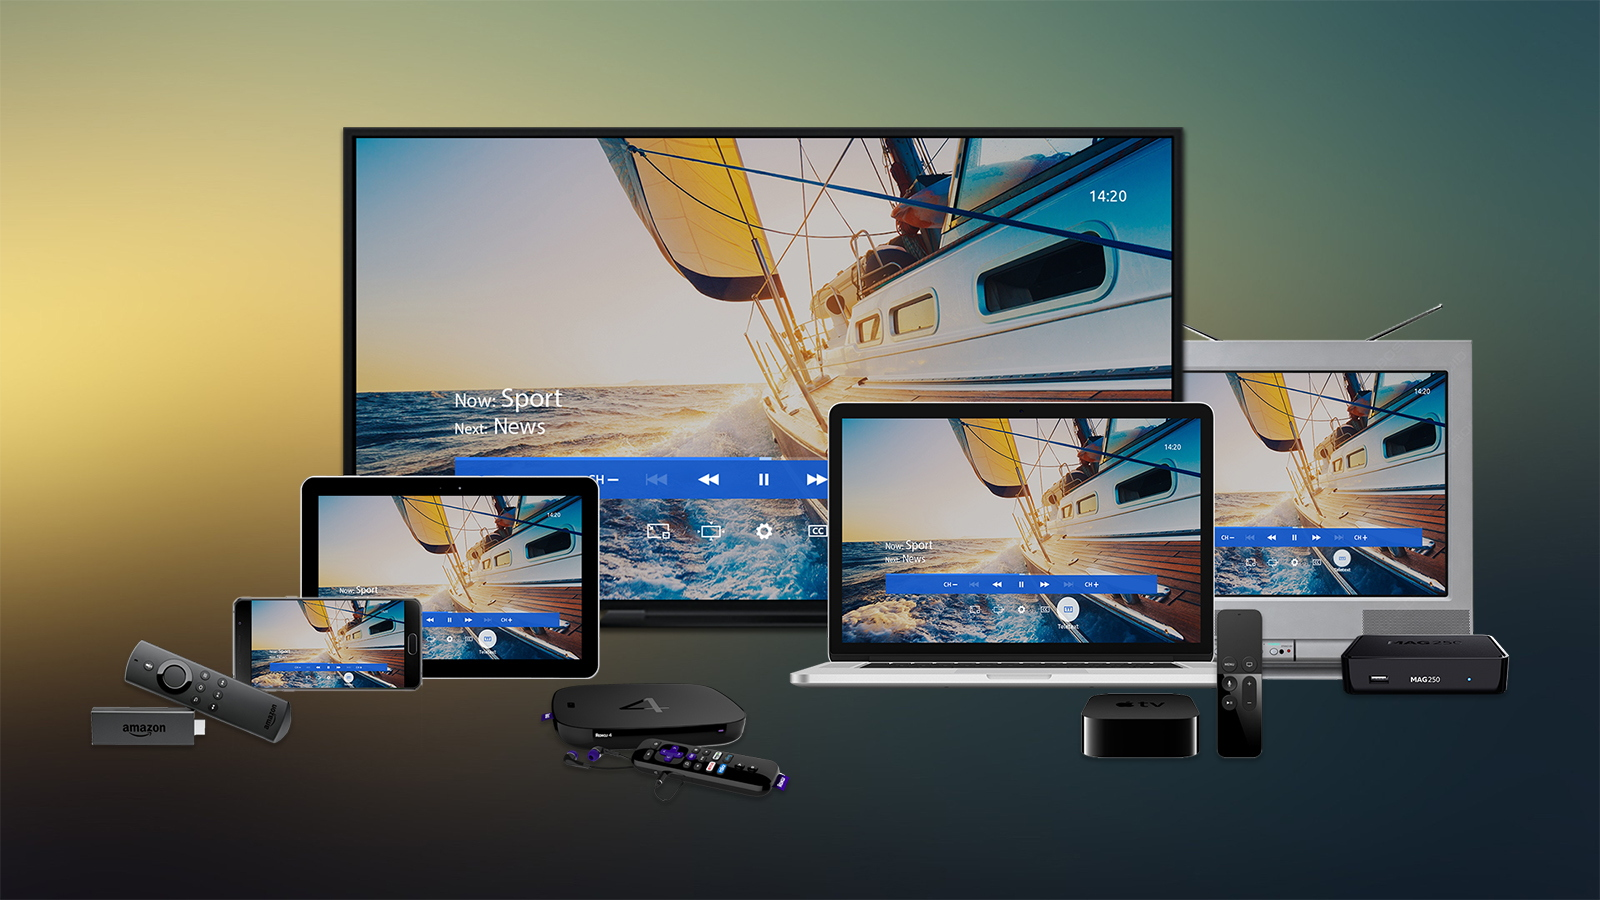 Infomir STB Manufacturer to Block Access to Pirate IPTV Services